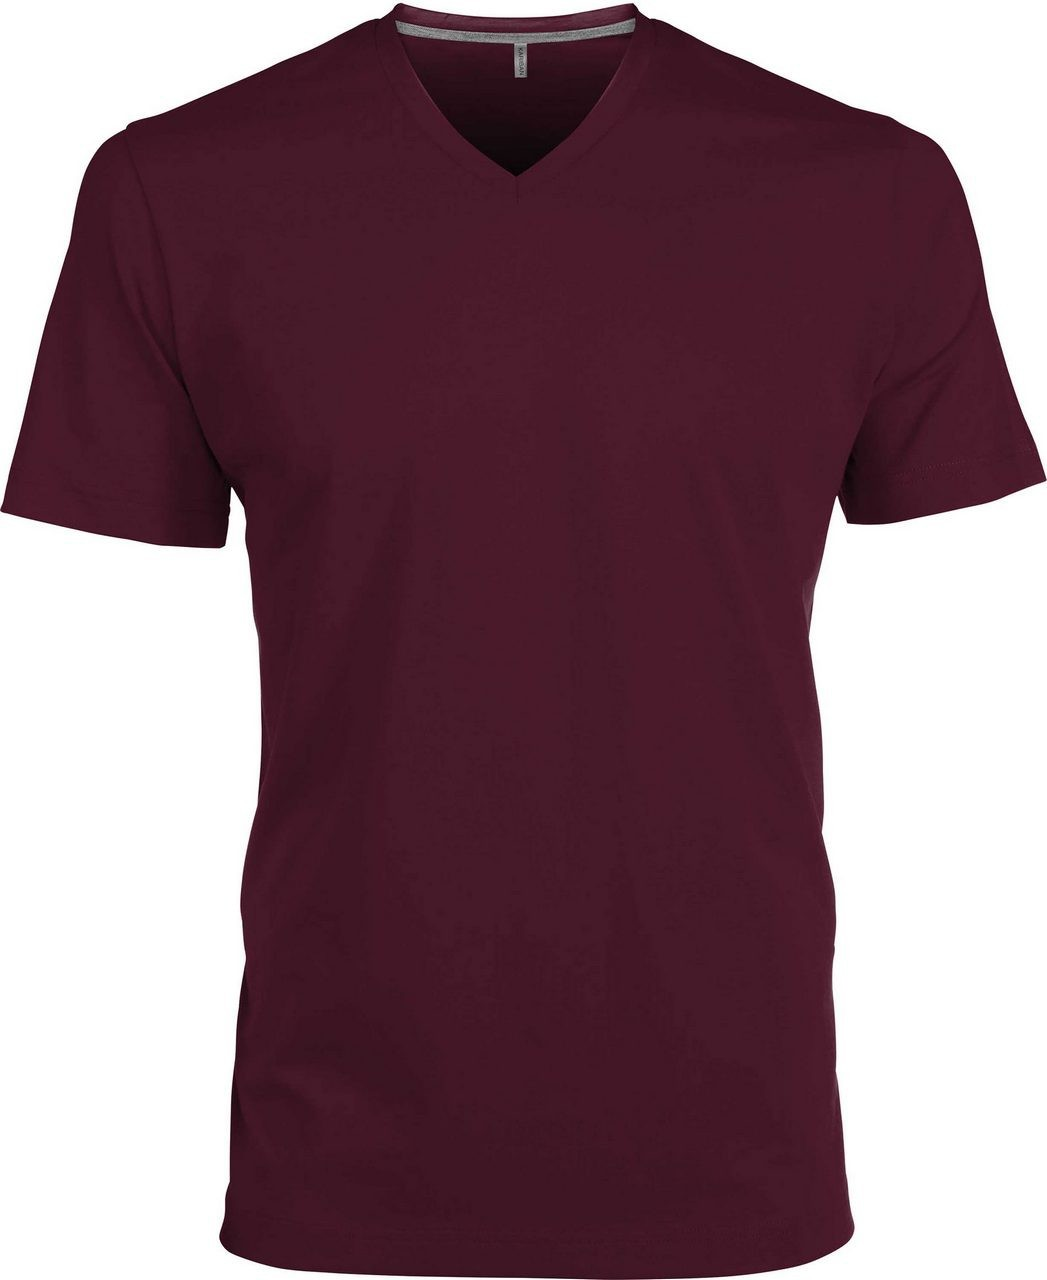 5ad7363a4e Kariban V-neck T-shirt, Wine, S (T-shirt, 90-100% cotton ...